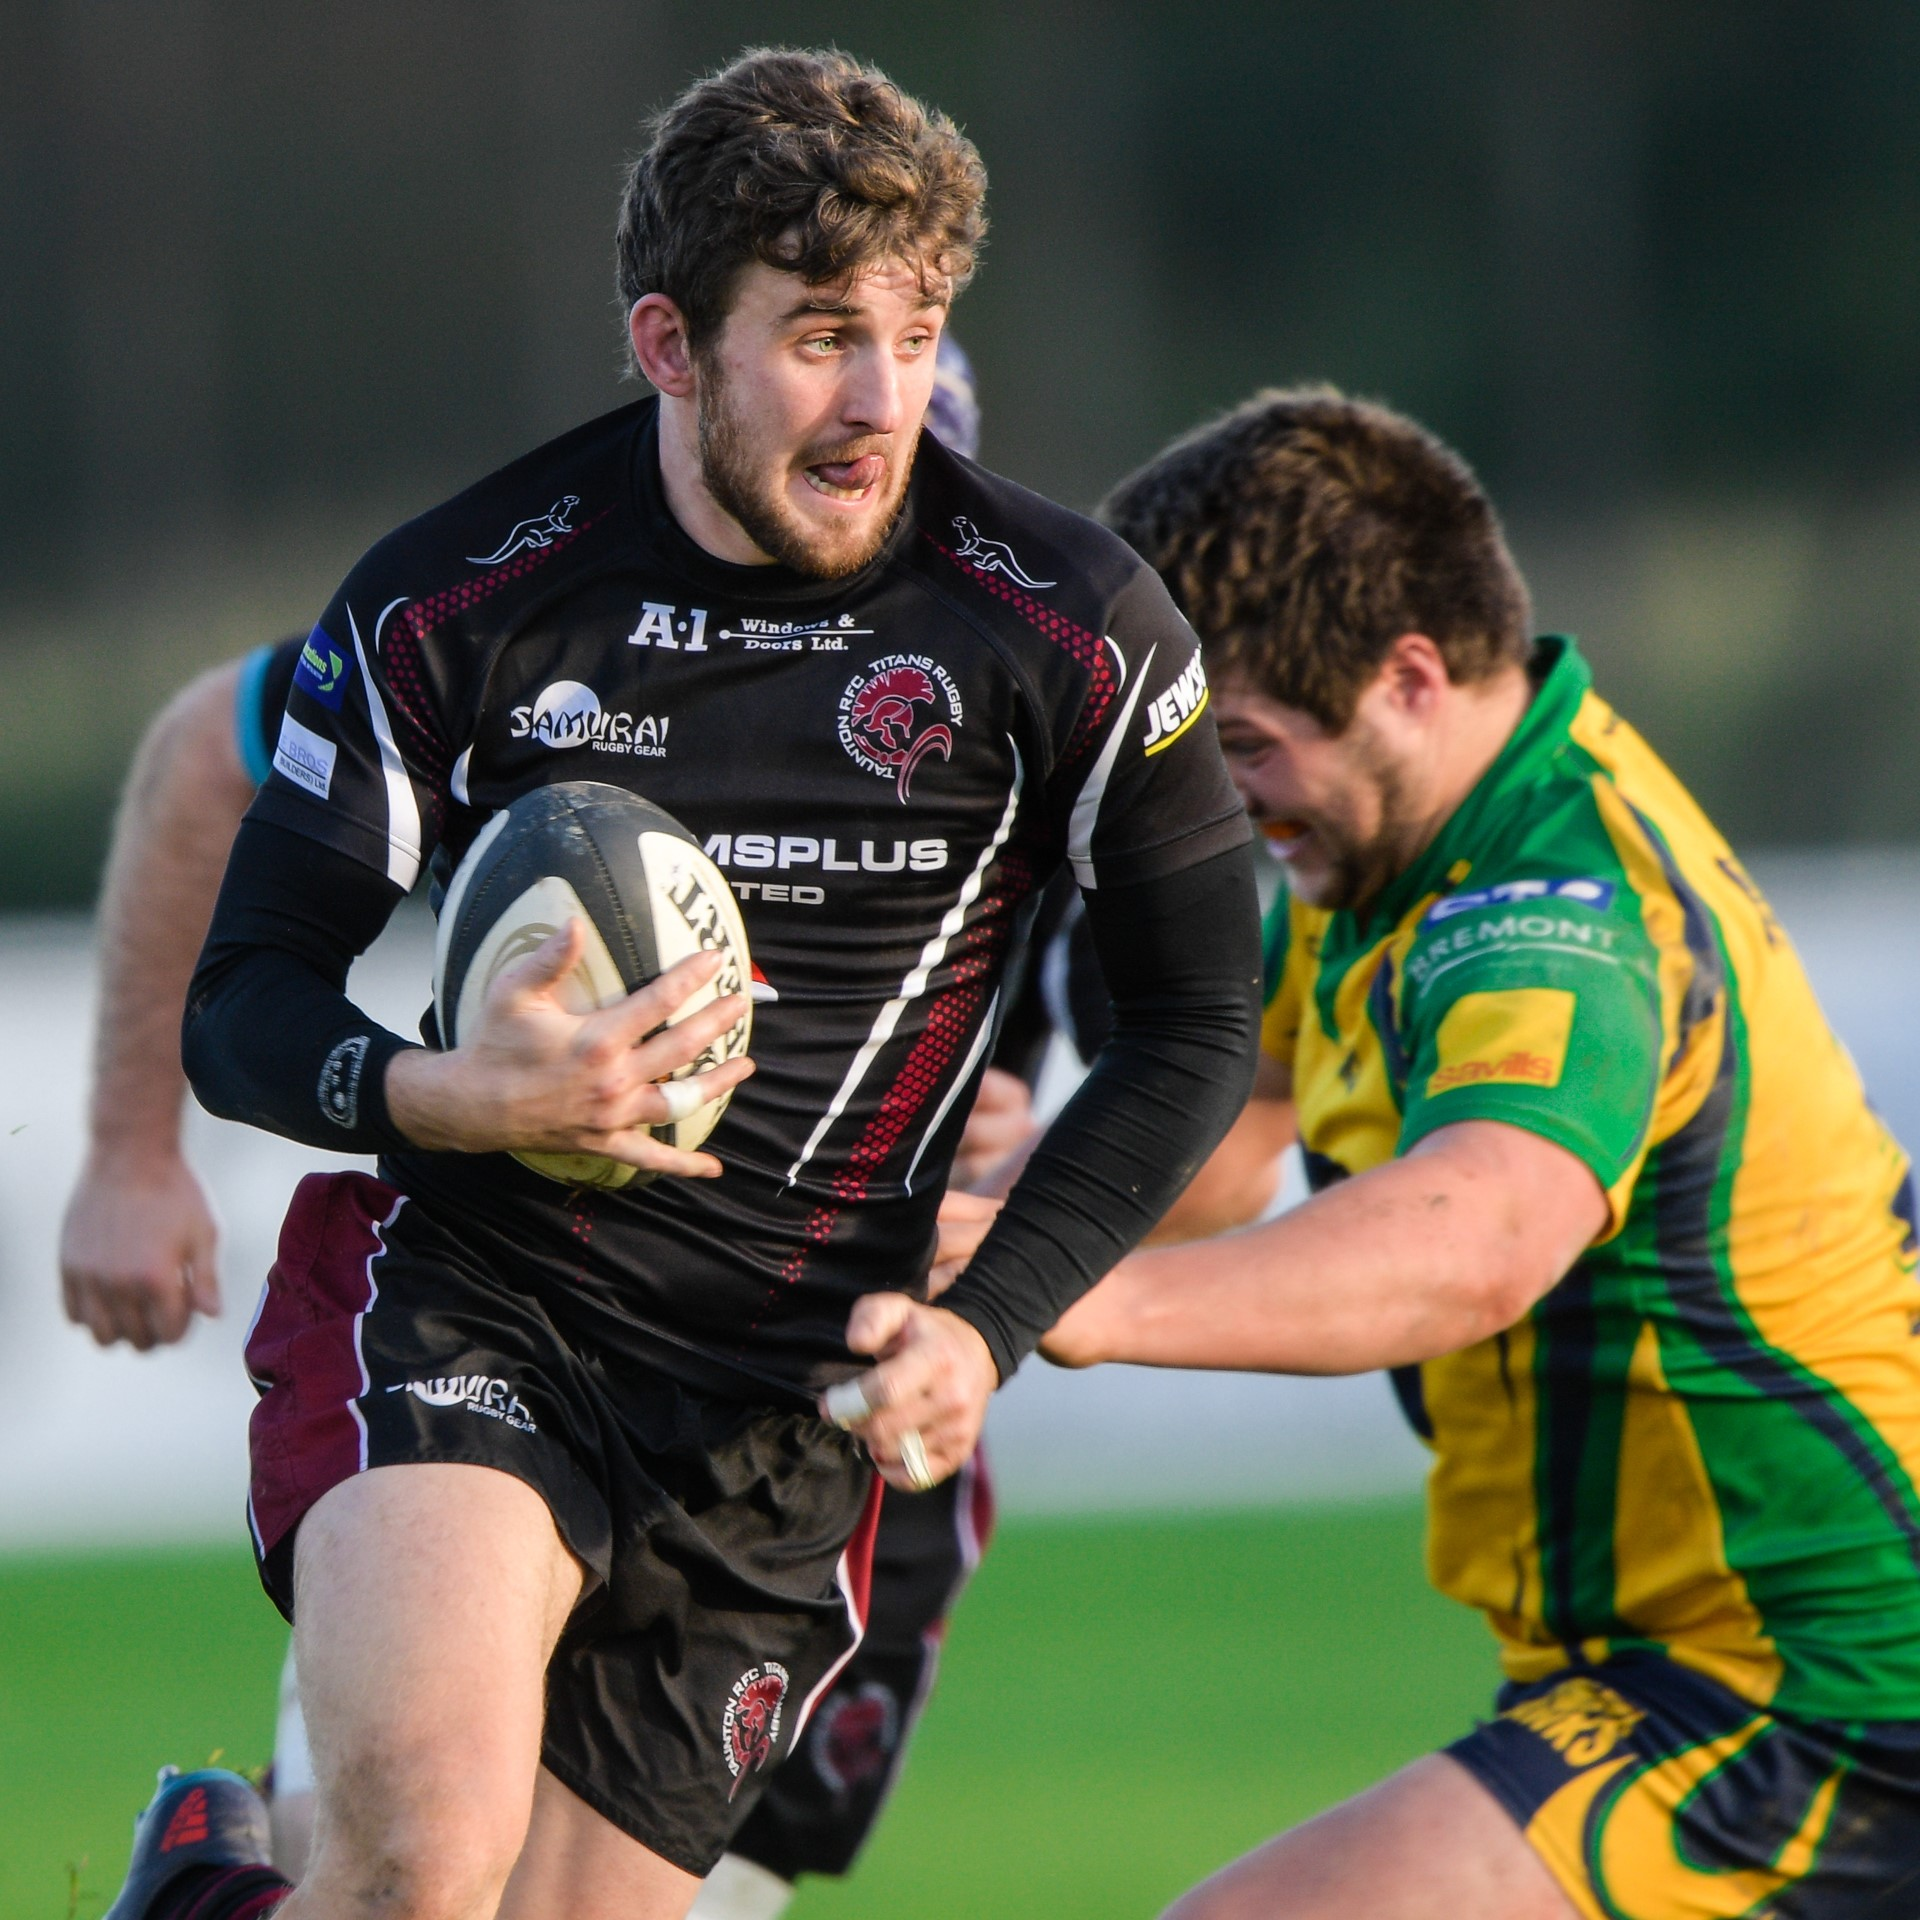 BRACE: Ollie Rice scored two tries for Taunton against Birmingham & Solihull. Pic: Clayton Jane